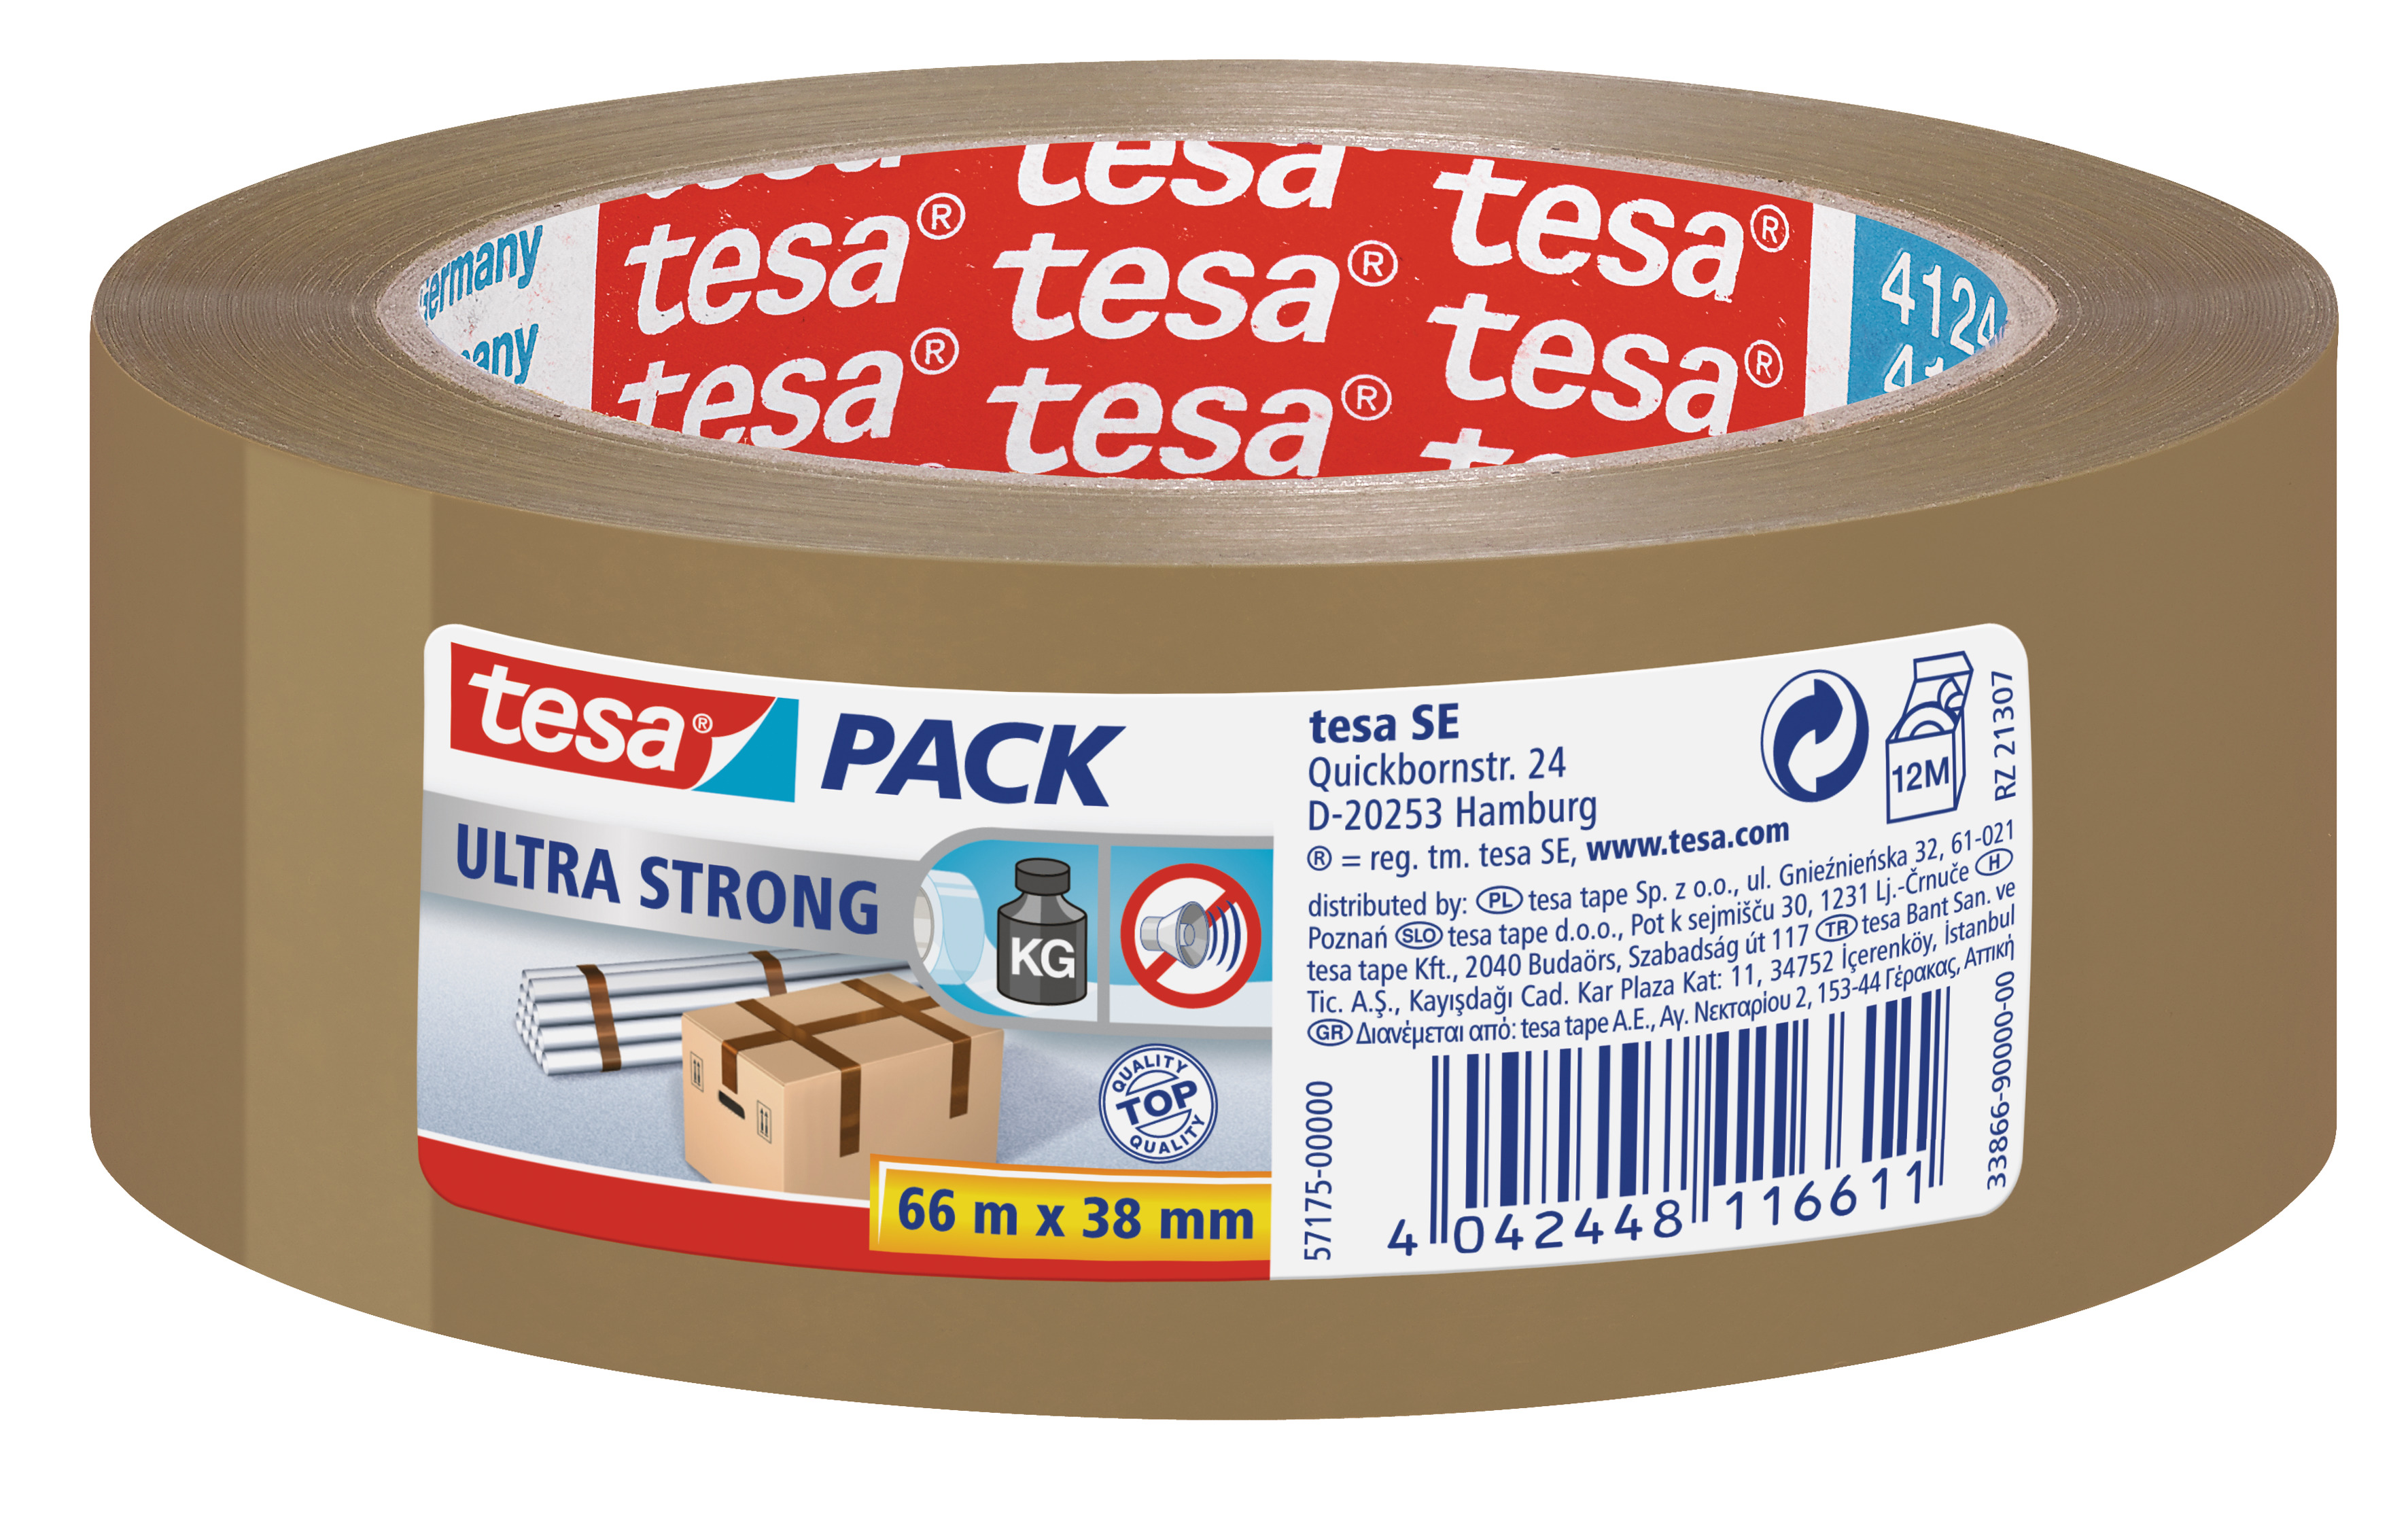 GP: 0,04 EUR/m tesa tesapack ultra strong, original braun ( PVC ) 66m x 38mm